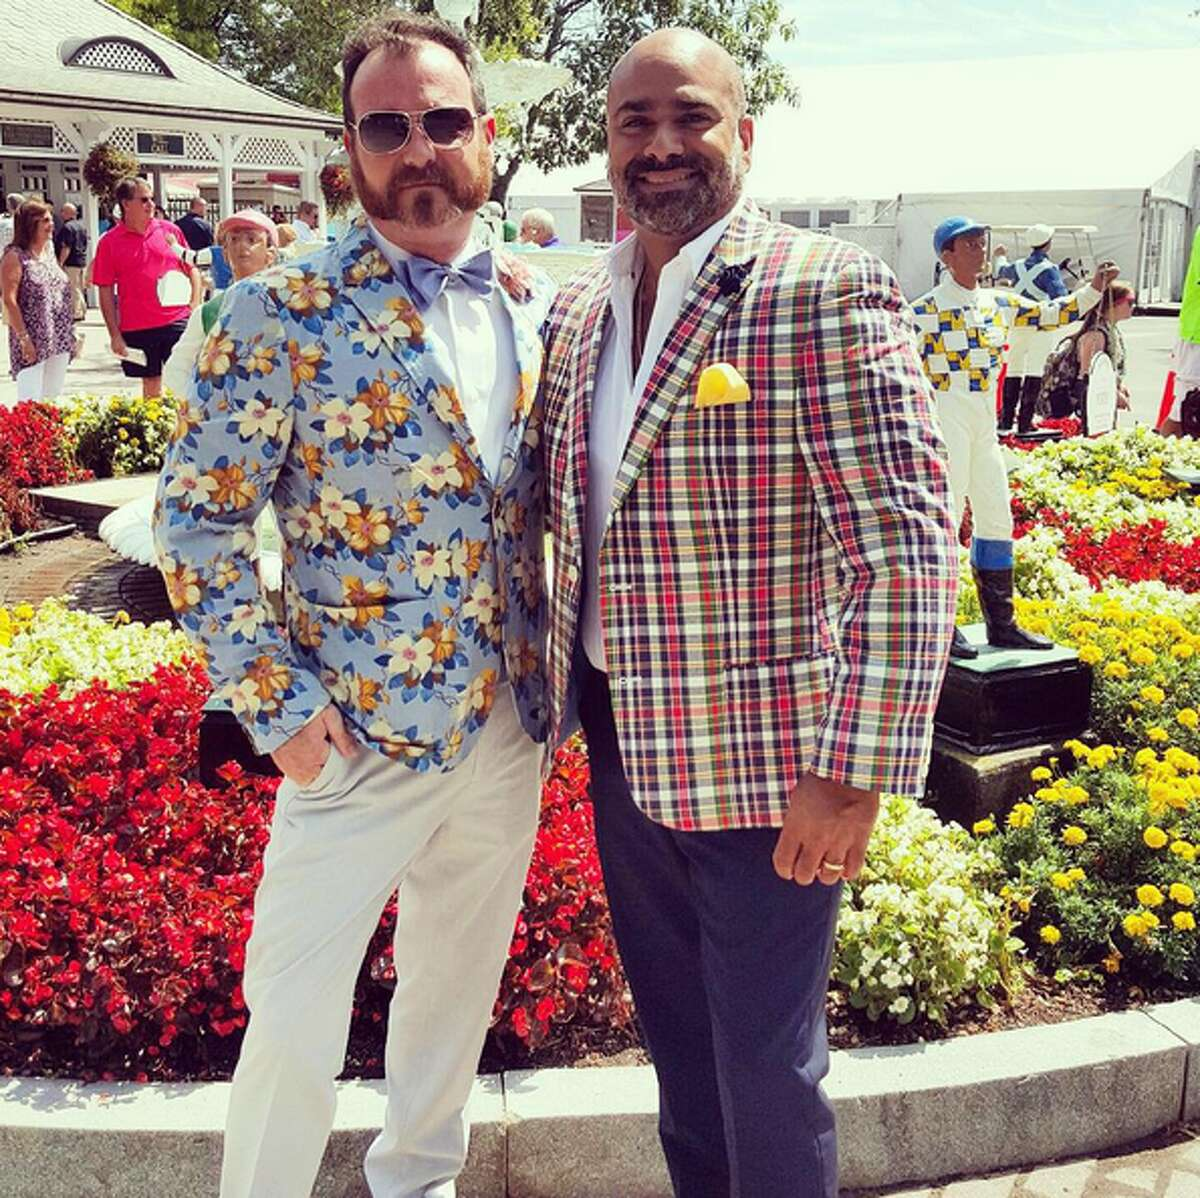 James G. Murphy (left) and Erick Jerome (right) of Miami Beach brought style to the Spa. Photo credit: @mamemurphy